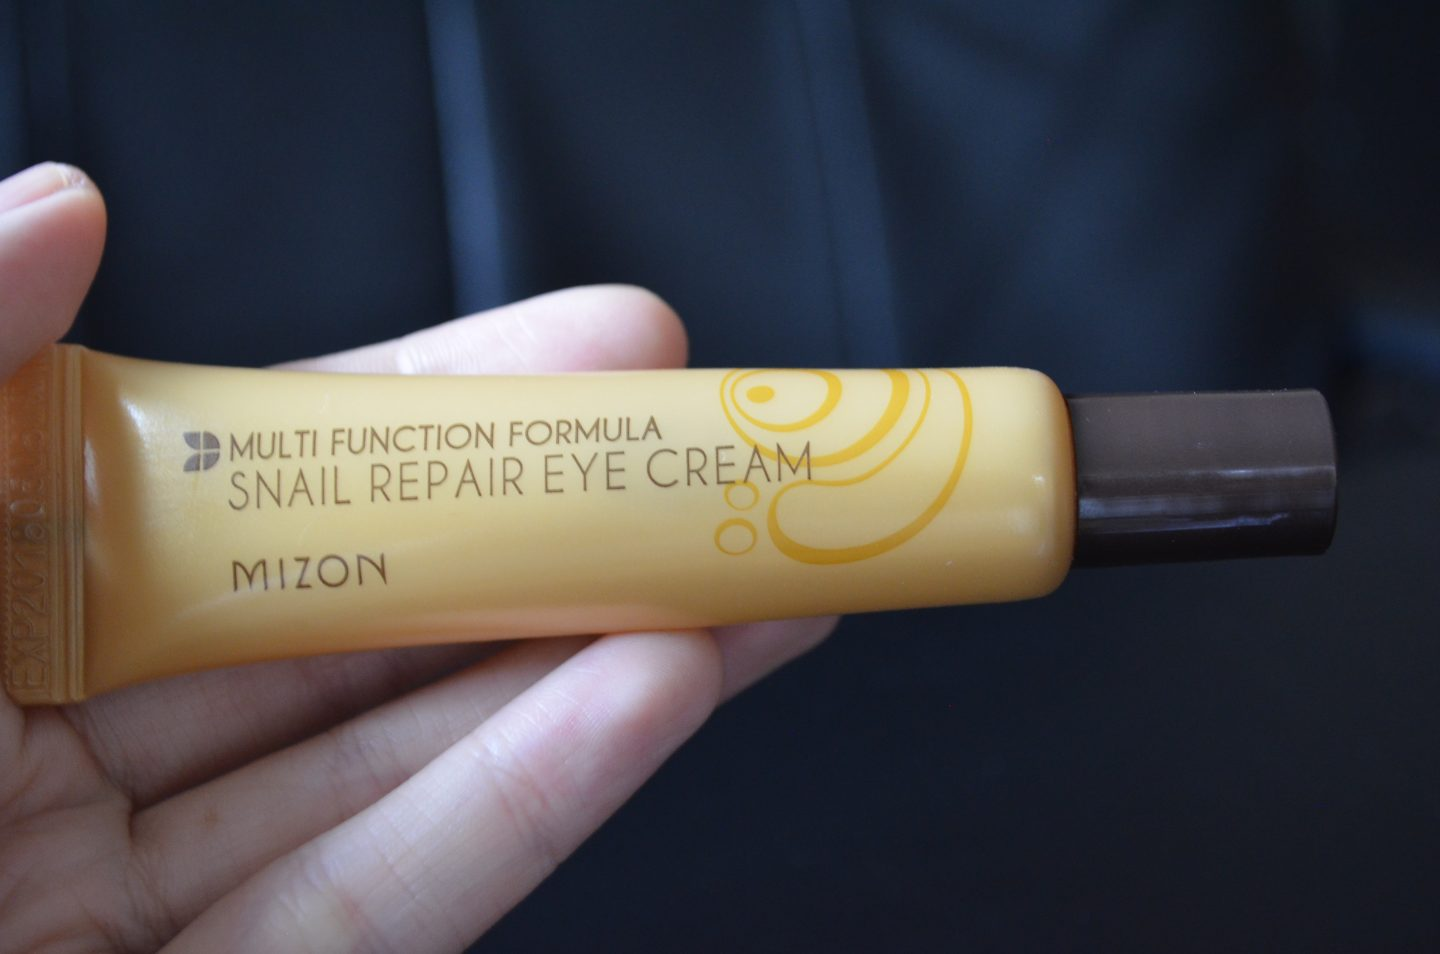 REVIEW: Mizon Snail Repair Eye Cream